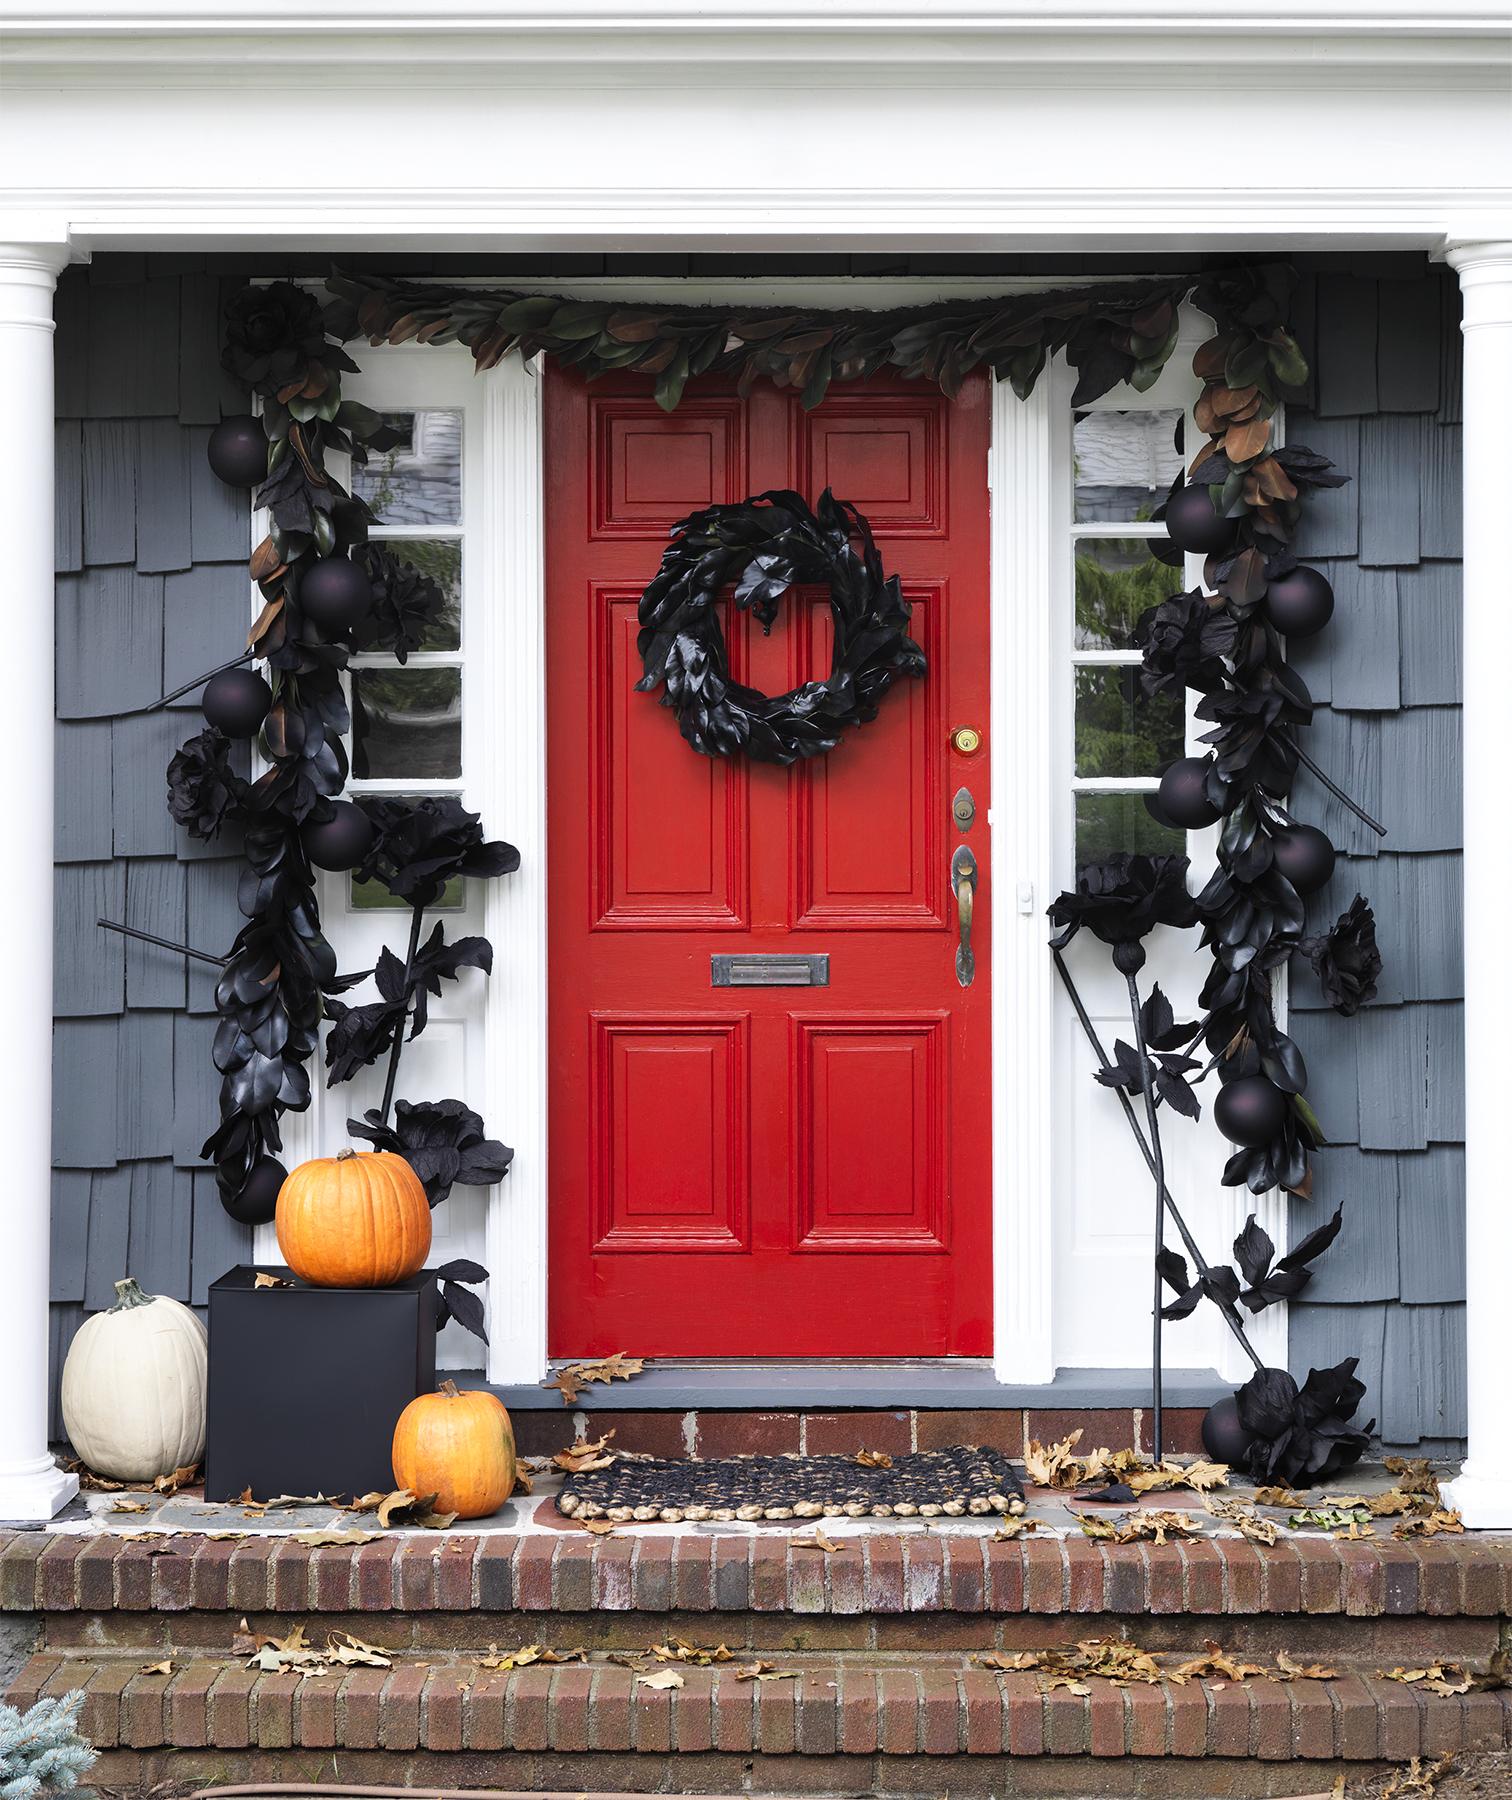 Red door decorated for Halloween